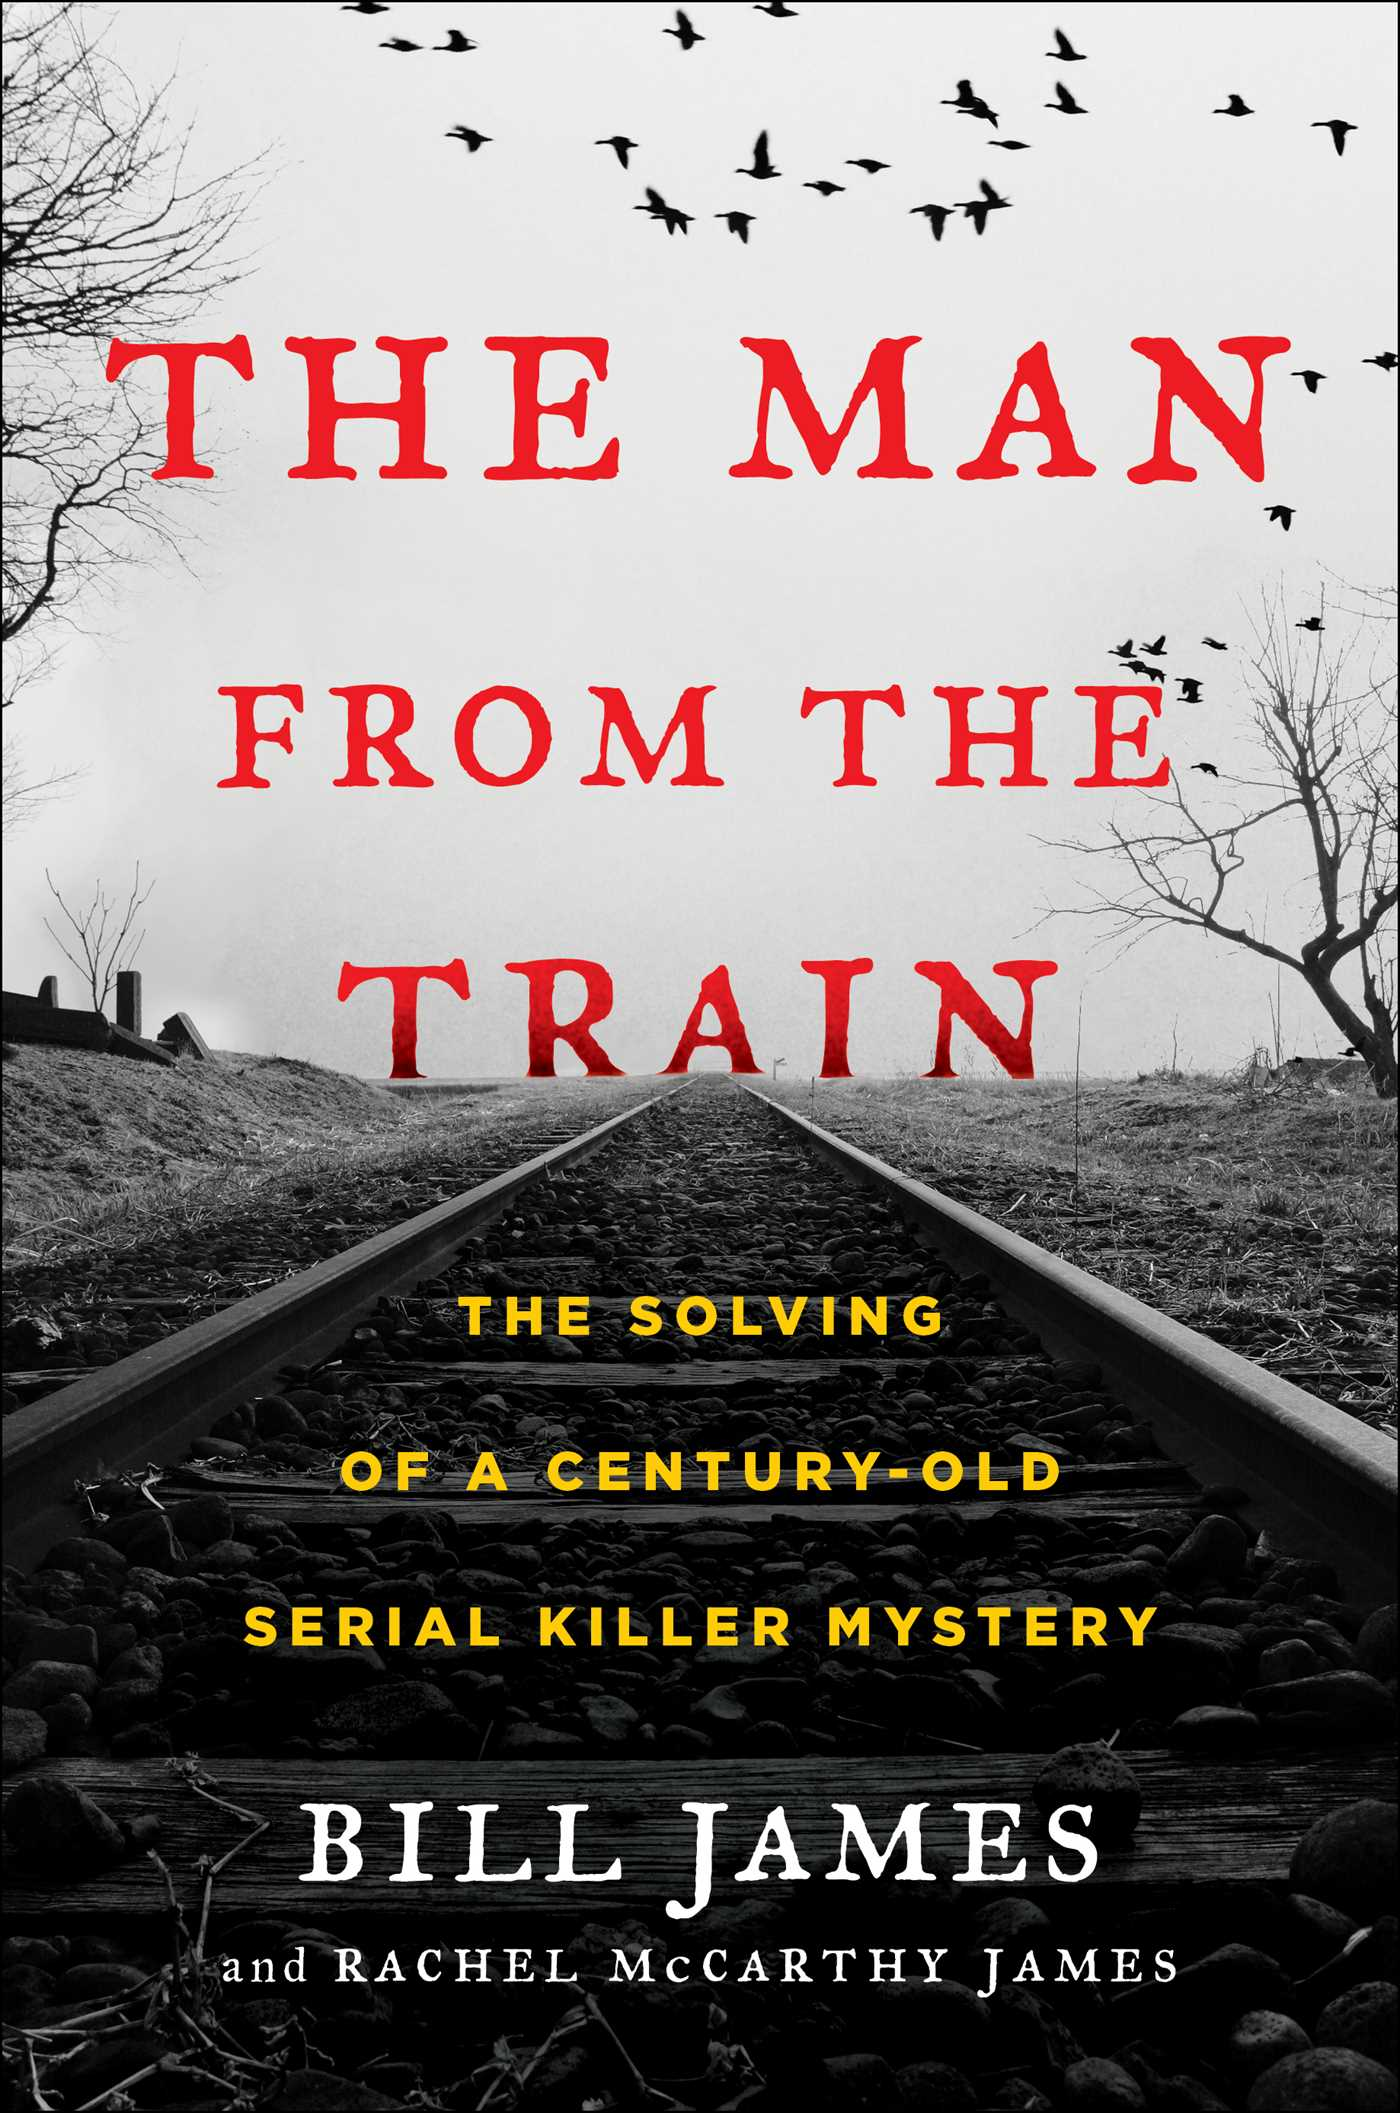 The man from the train 9781476796253 hr